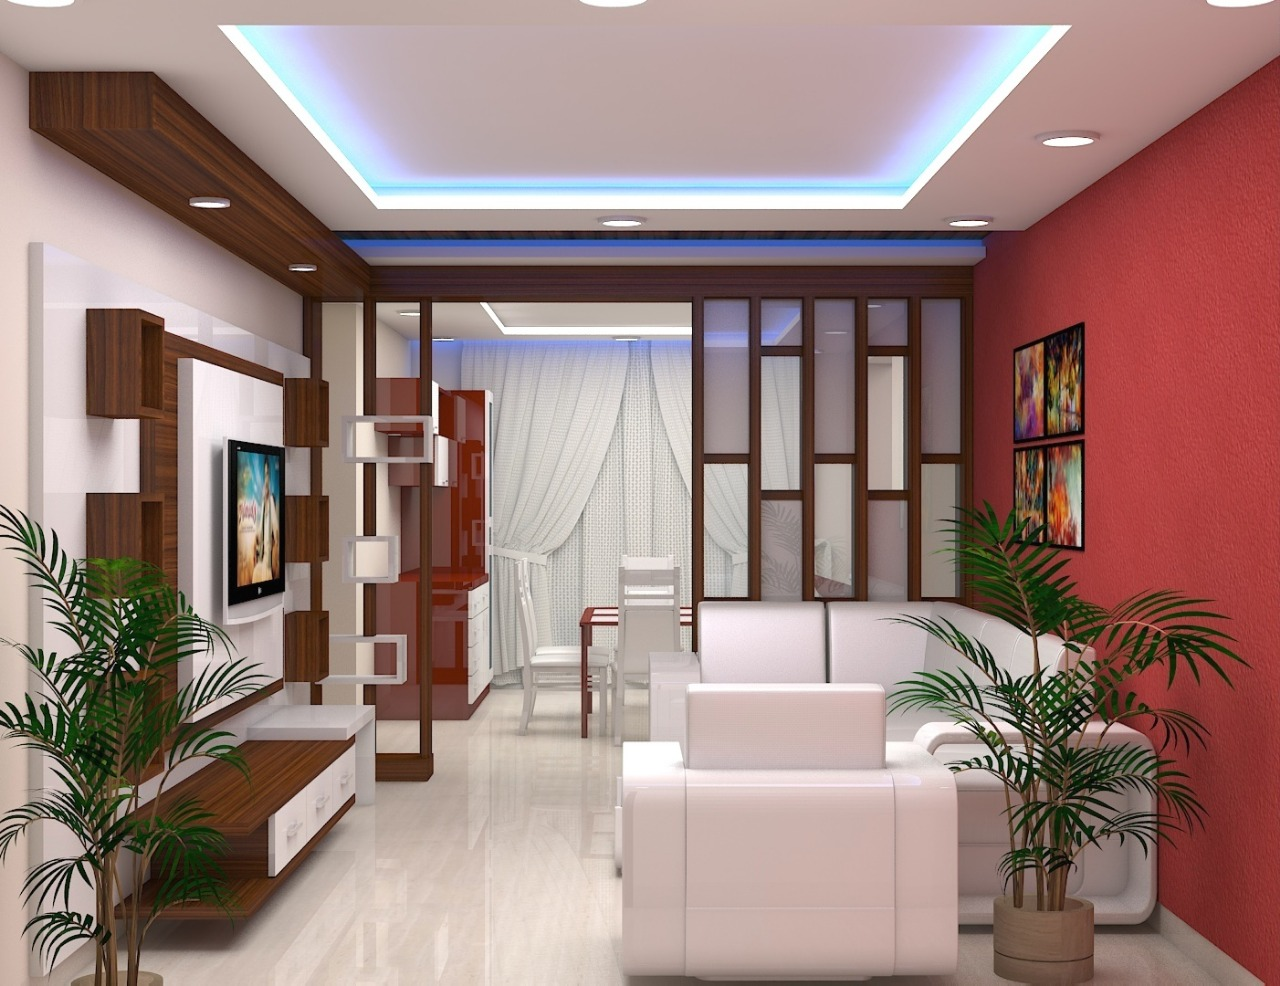 R7 INTERIORS, INTERIOR DESIGNER IN HYDERABAD,INTERIOR DESIGNER IN UPPAL, INTERIOR DESIGNER IN MANIKONDA,INTERIOR DESIGNER IN TOLICHOWKI,INTERIOR DESIGNER IN GACCHIBOWLI,INTERIOR DESIGNER IN L B NAGAR,